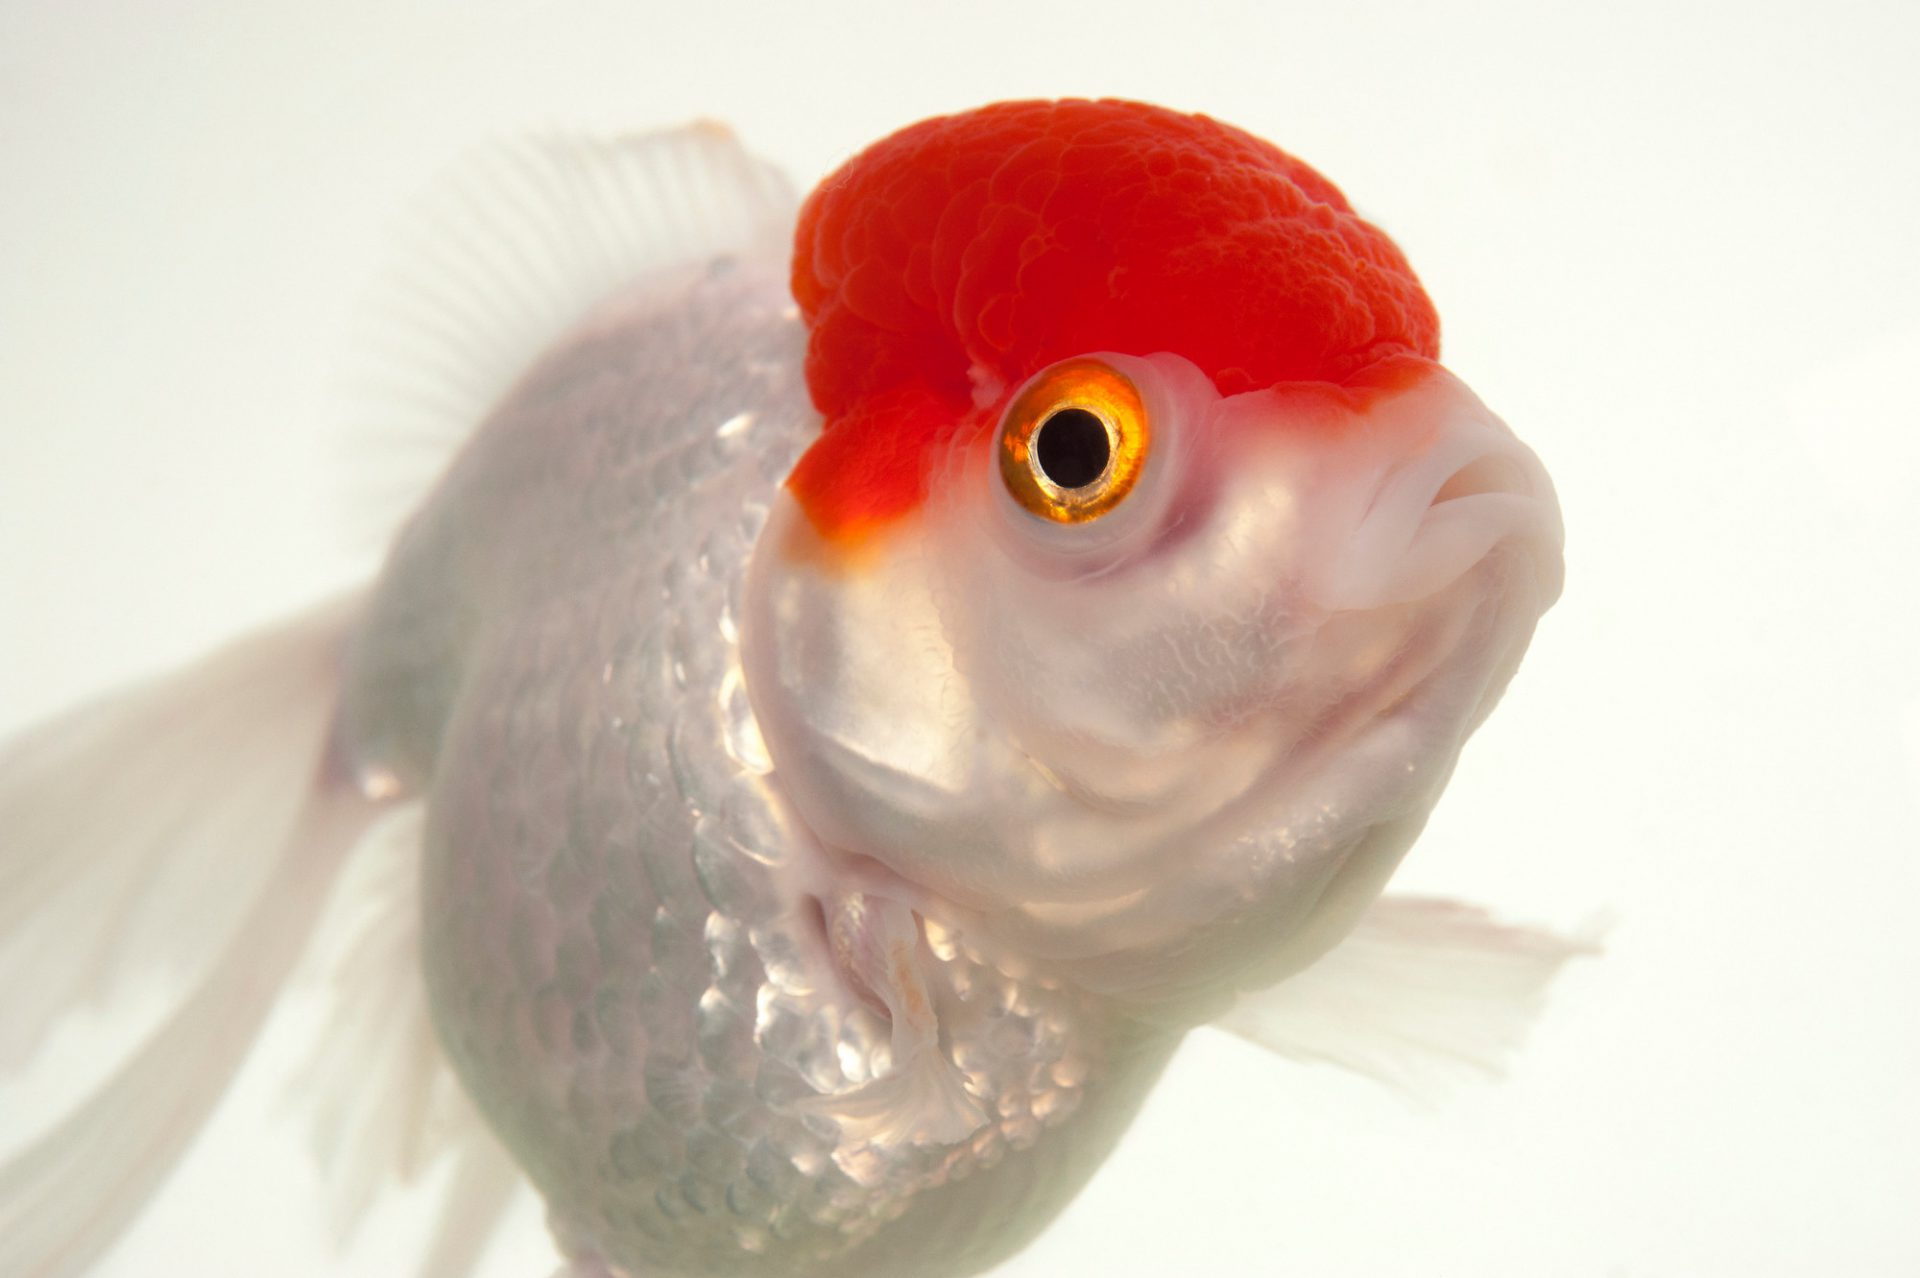 Photo: A red capped-oranda, a fancy breed of goldfish at Ocean Park in Hong Kong.